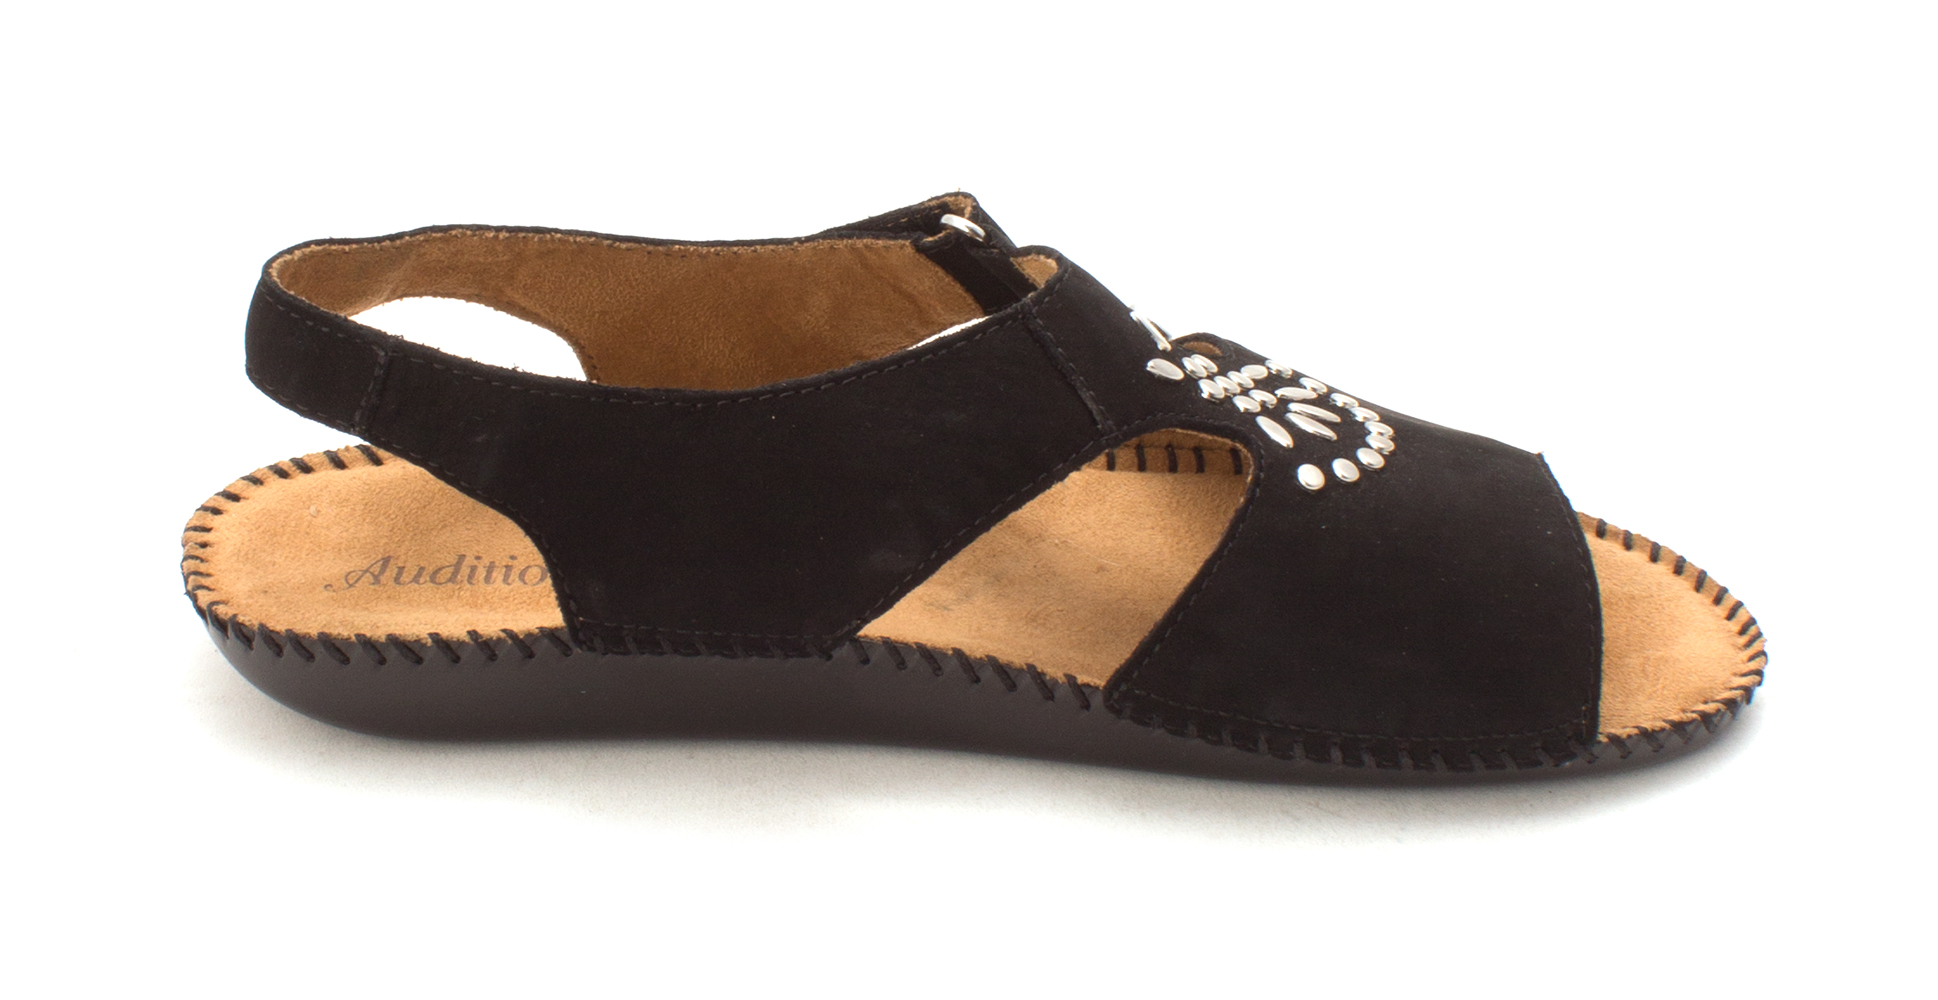 Auditions Devine Women's Sandal Economical, stylish, and eye-catching shoes